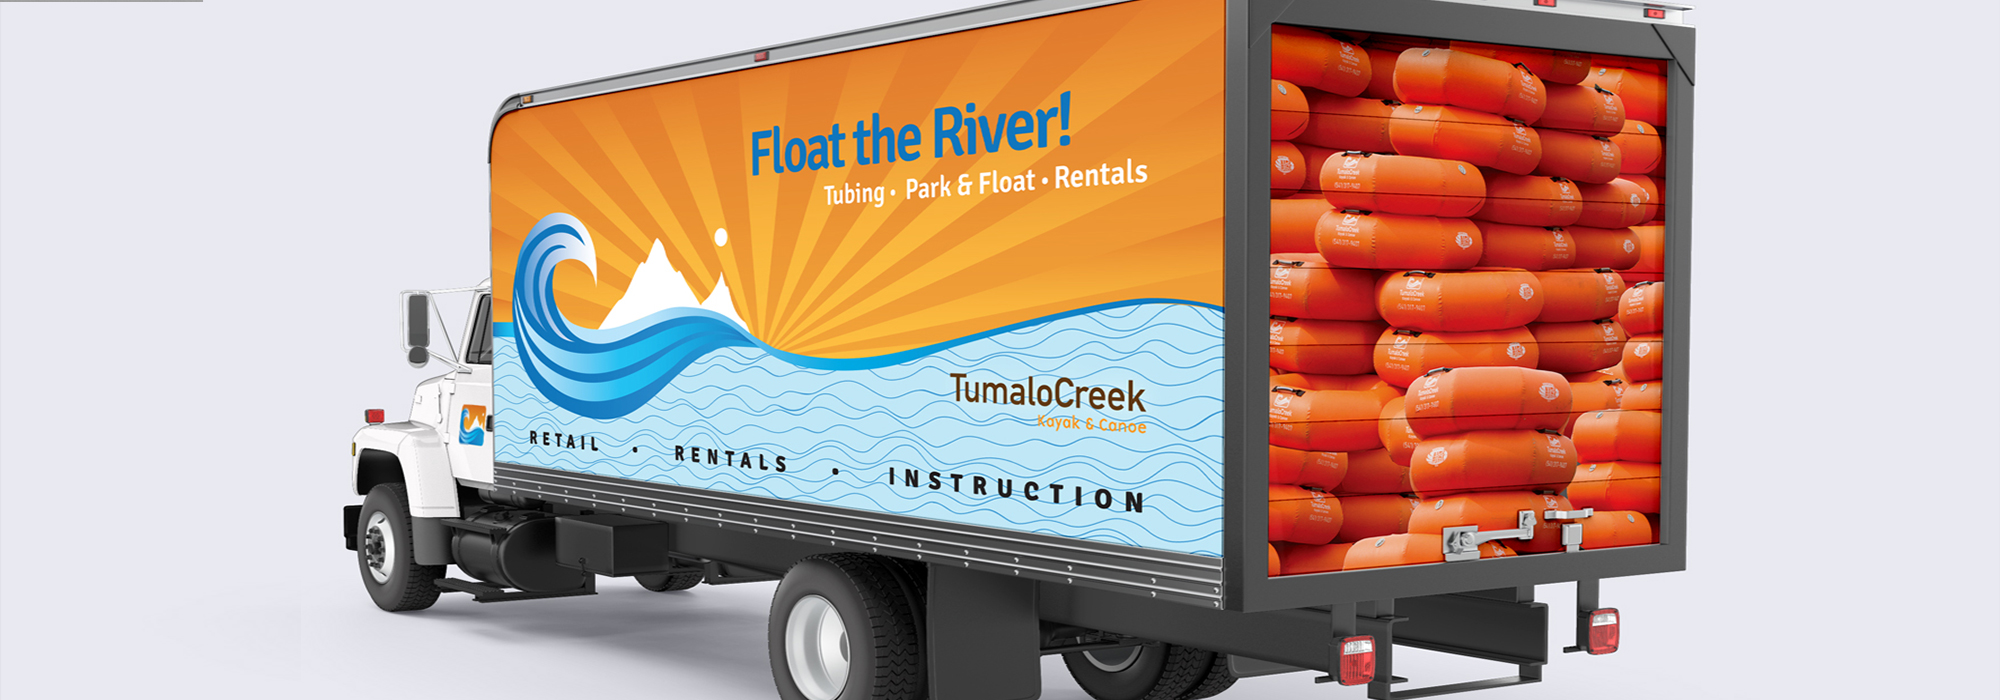 Launch graphics for Tumalo Creek Park & Float